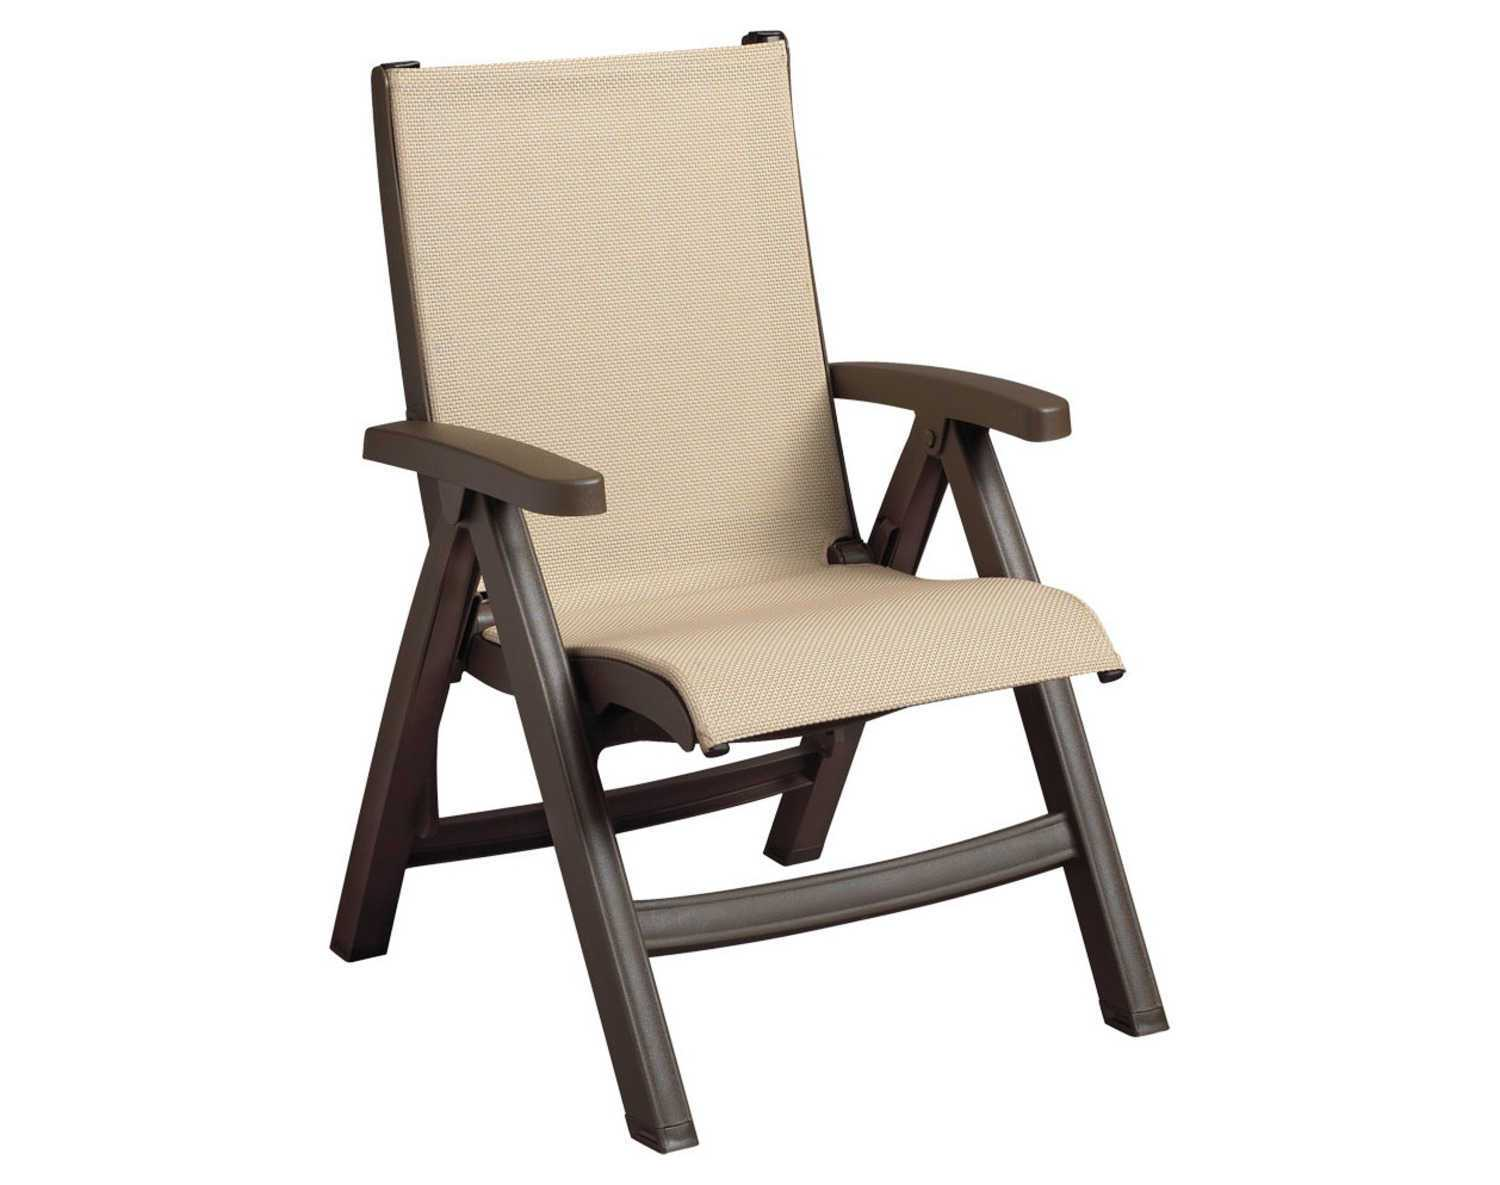 Resin Folding Chairs Grosfillex Belize Midback Resin Folding Sling Bronze Mist